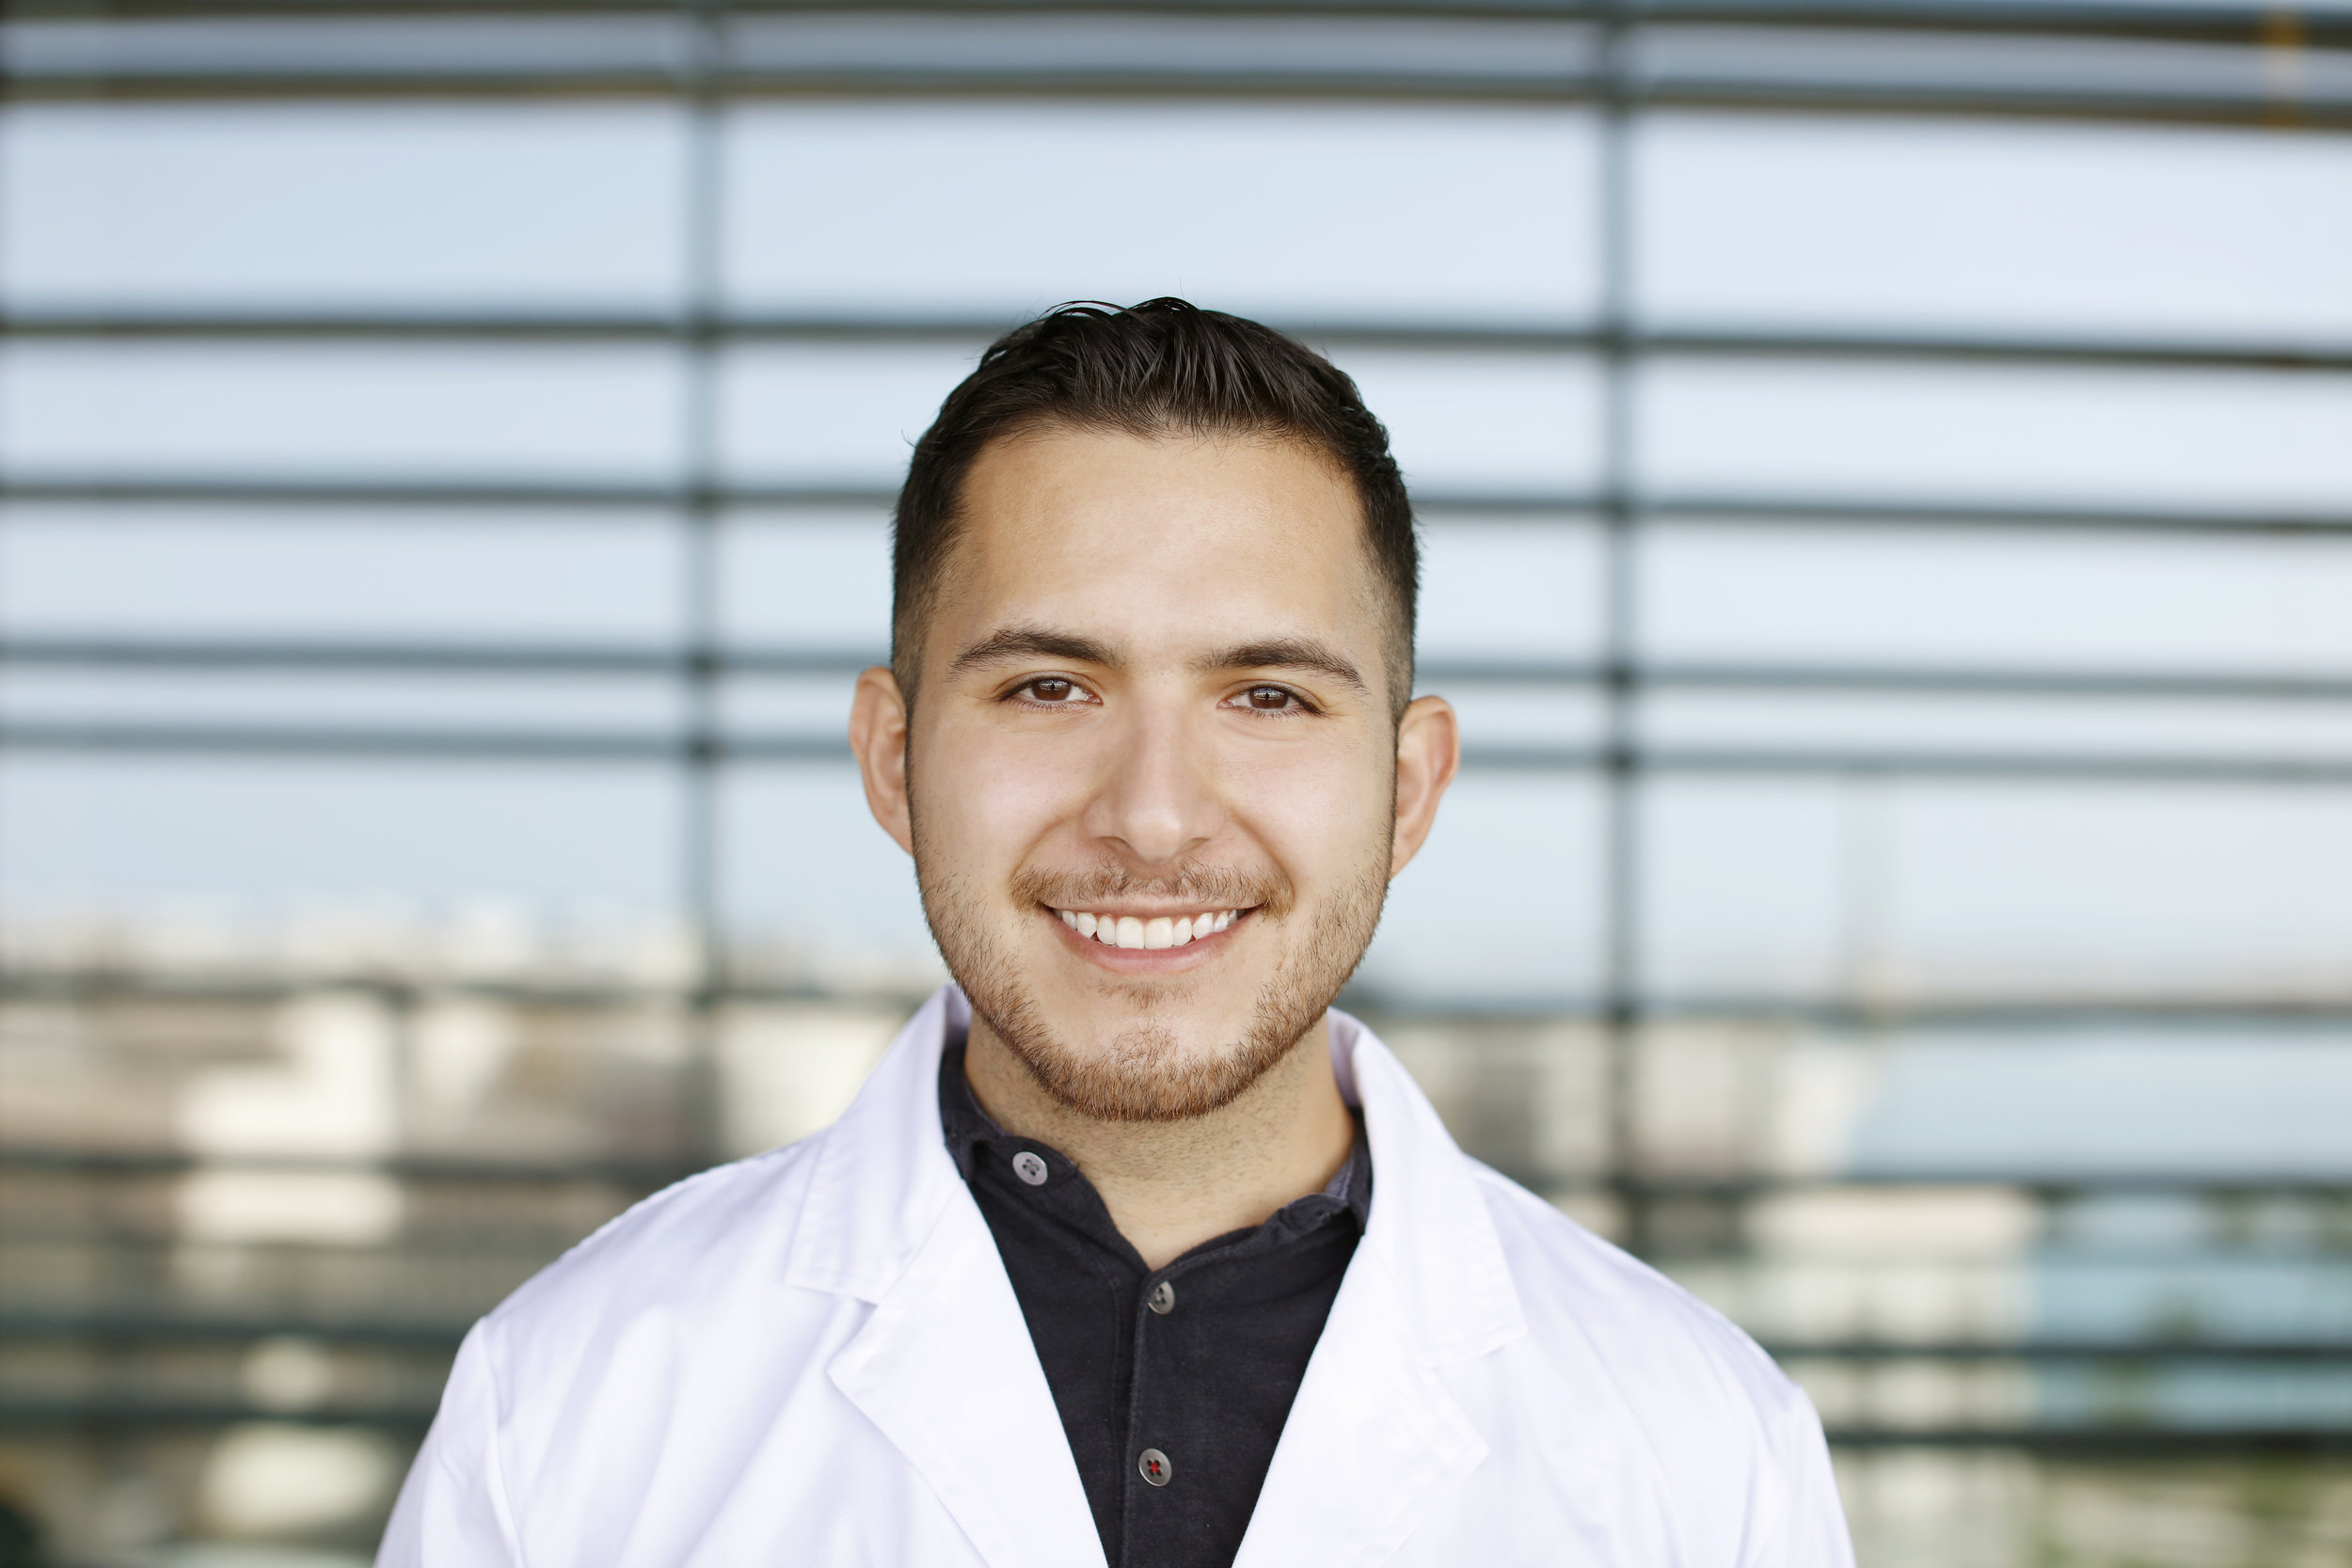 PhD student Danial Corzo wins 3rd place at the STEAM Innovation Challenge - 23/10/17Congratulation to PhD Student Danial Corzo for winning 3rd place at the STEAM Innovation Challenge, an intensive three-day weekend ideation event held at KAUST.